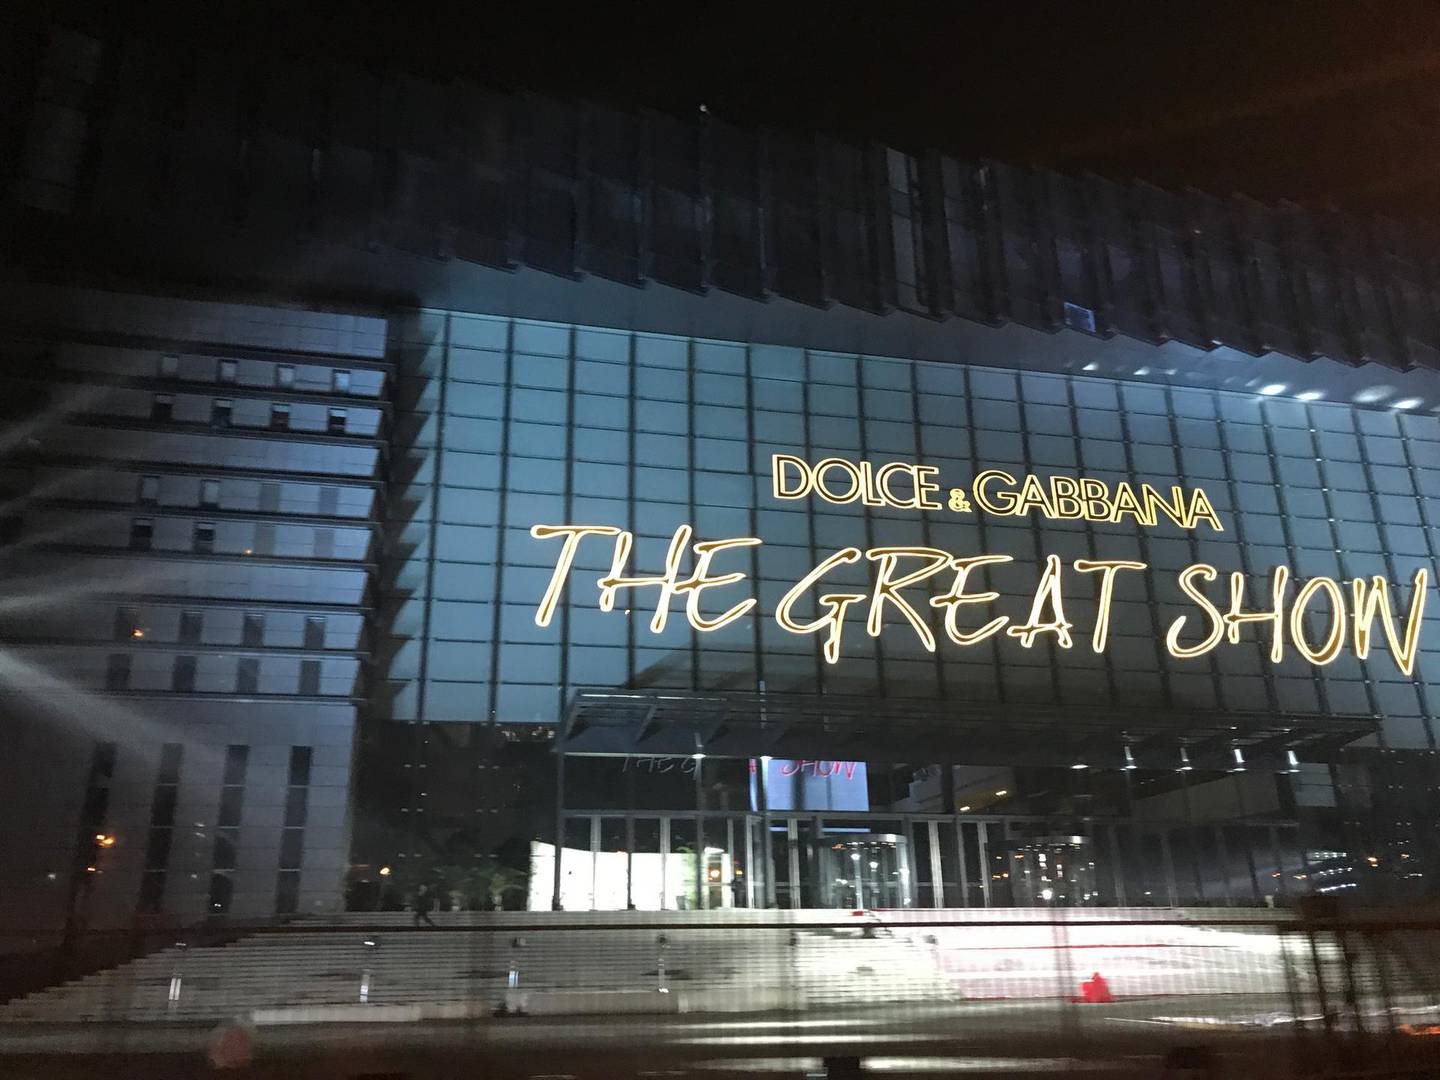 epa07182365 A general view of the venue for The Great Show of Dolce and Gabbana in Shanghai, China, 19 November 2018 (issued 22 November 2018). The Italian luxury fashion house canceled The Great Show in Shanghai hours before the scheduled time after celebrities boycotted invites made by its designer and co-founder Stefano Gabbana, following the brand's Instagram comments that were deemed racist towards China.  EPA/STR CHINA OUT